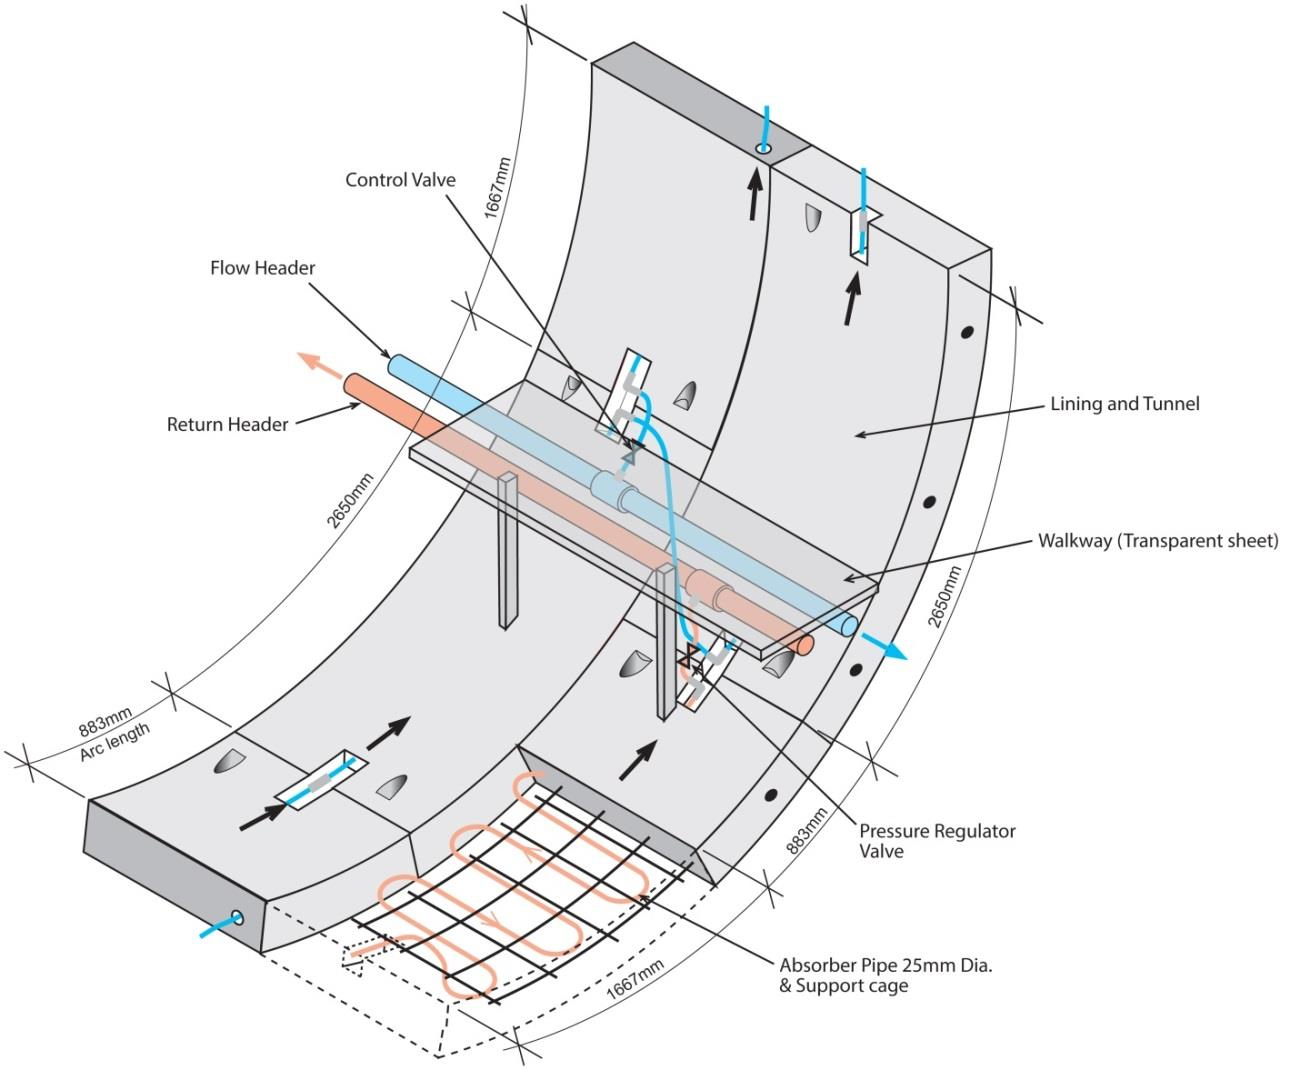 The Design Of Thermal Tunnel Energy Segments For Crossrail Piping Layout Plan 7c 018 Figure 5